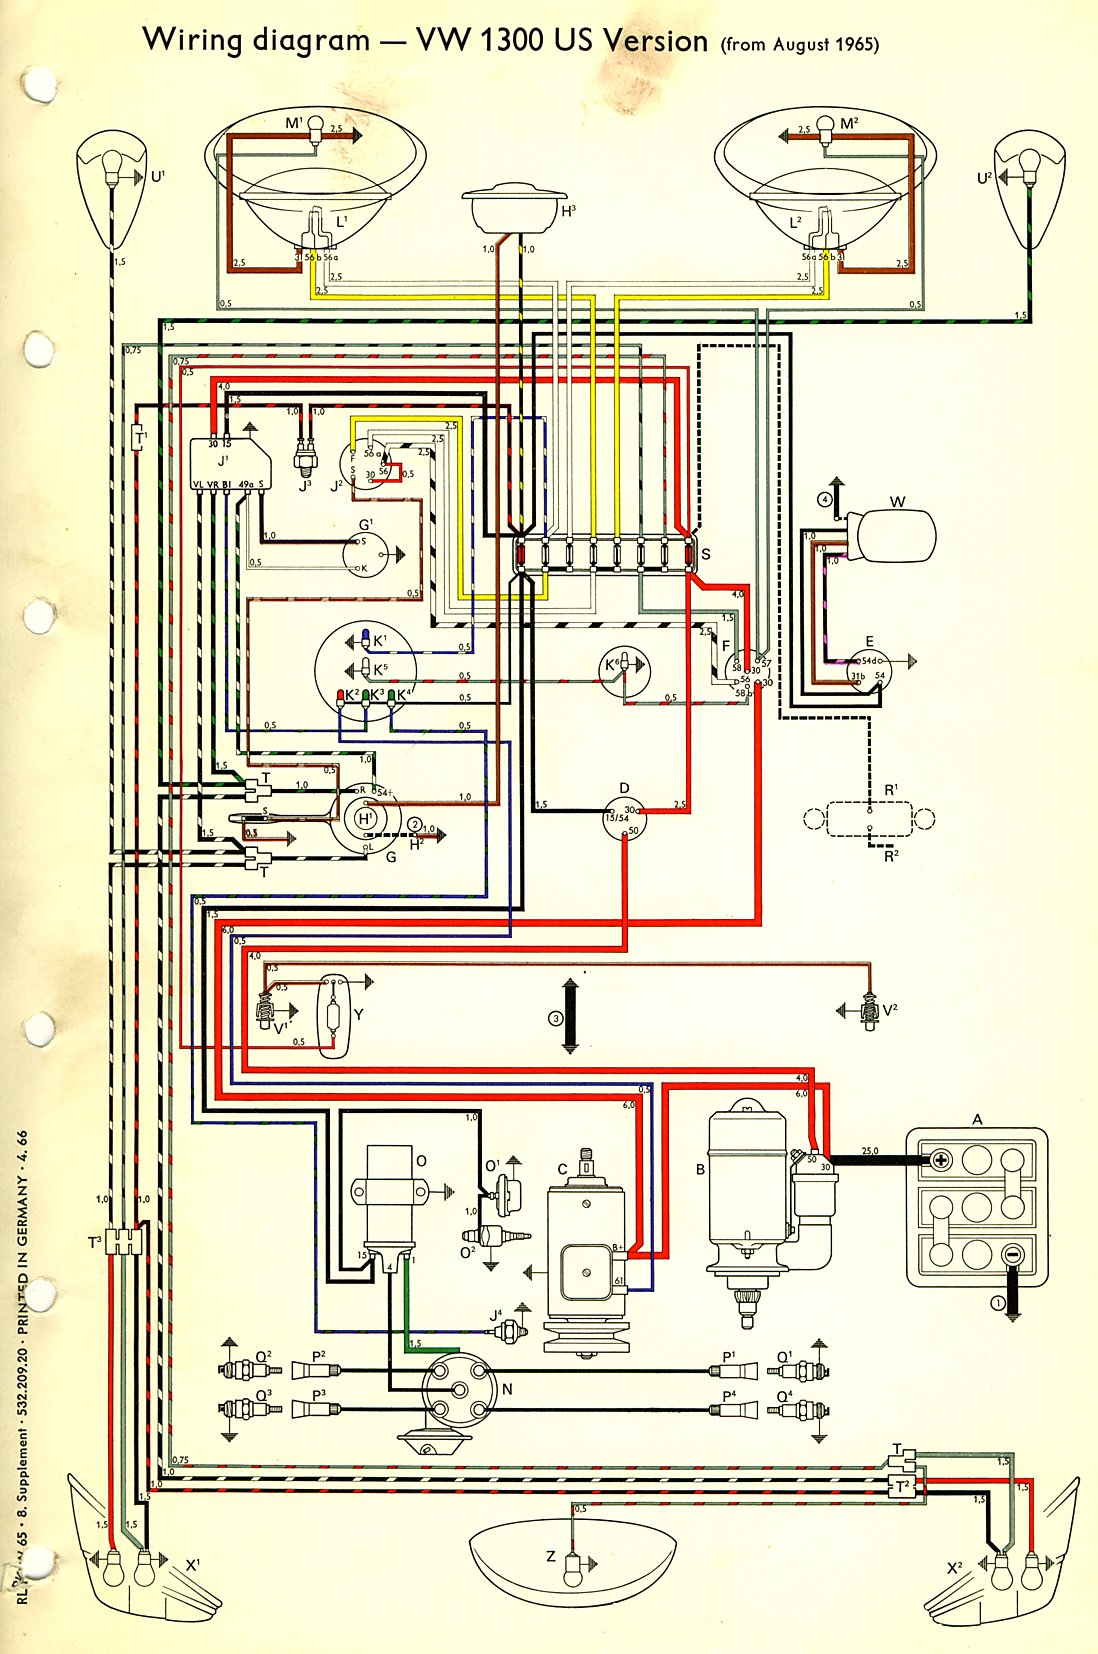 hight resolution of german simple wiring diagrams wiring diagramgermany wiring diagrams wiring diagram centregermany wiring diagrams wiring diagramgerman motor